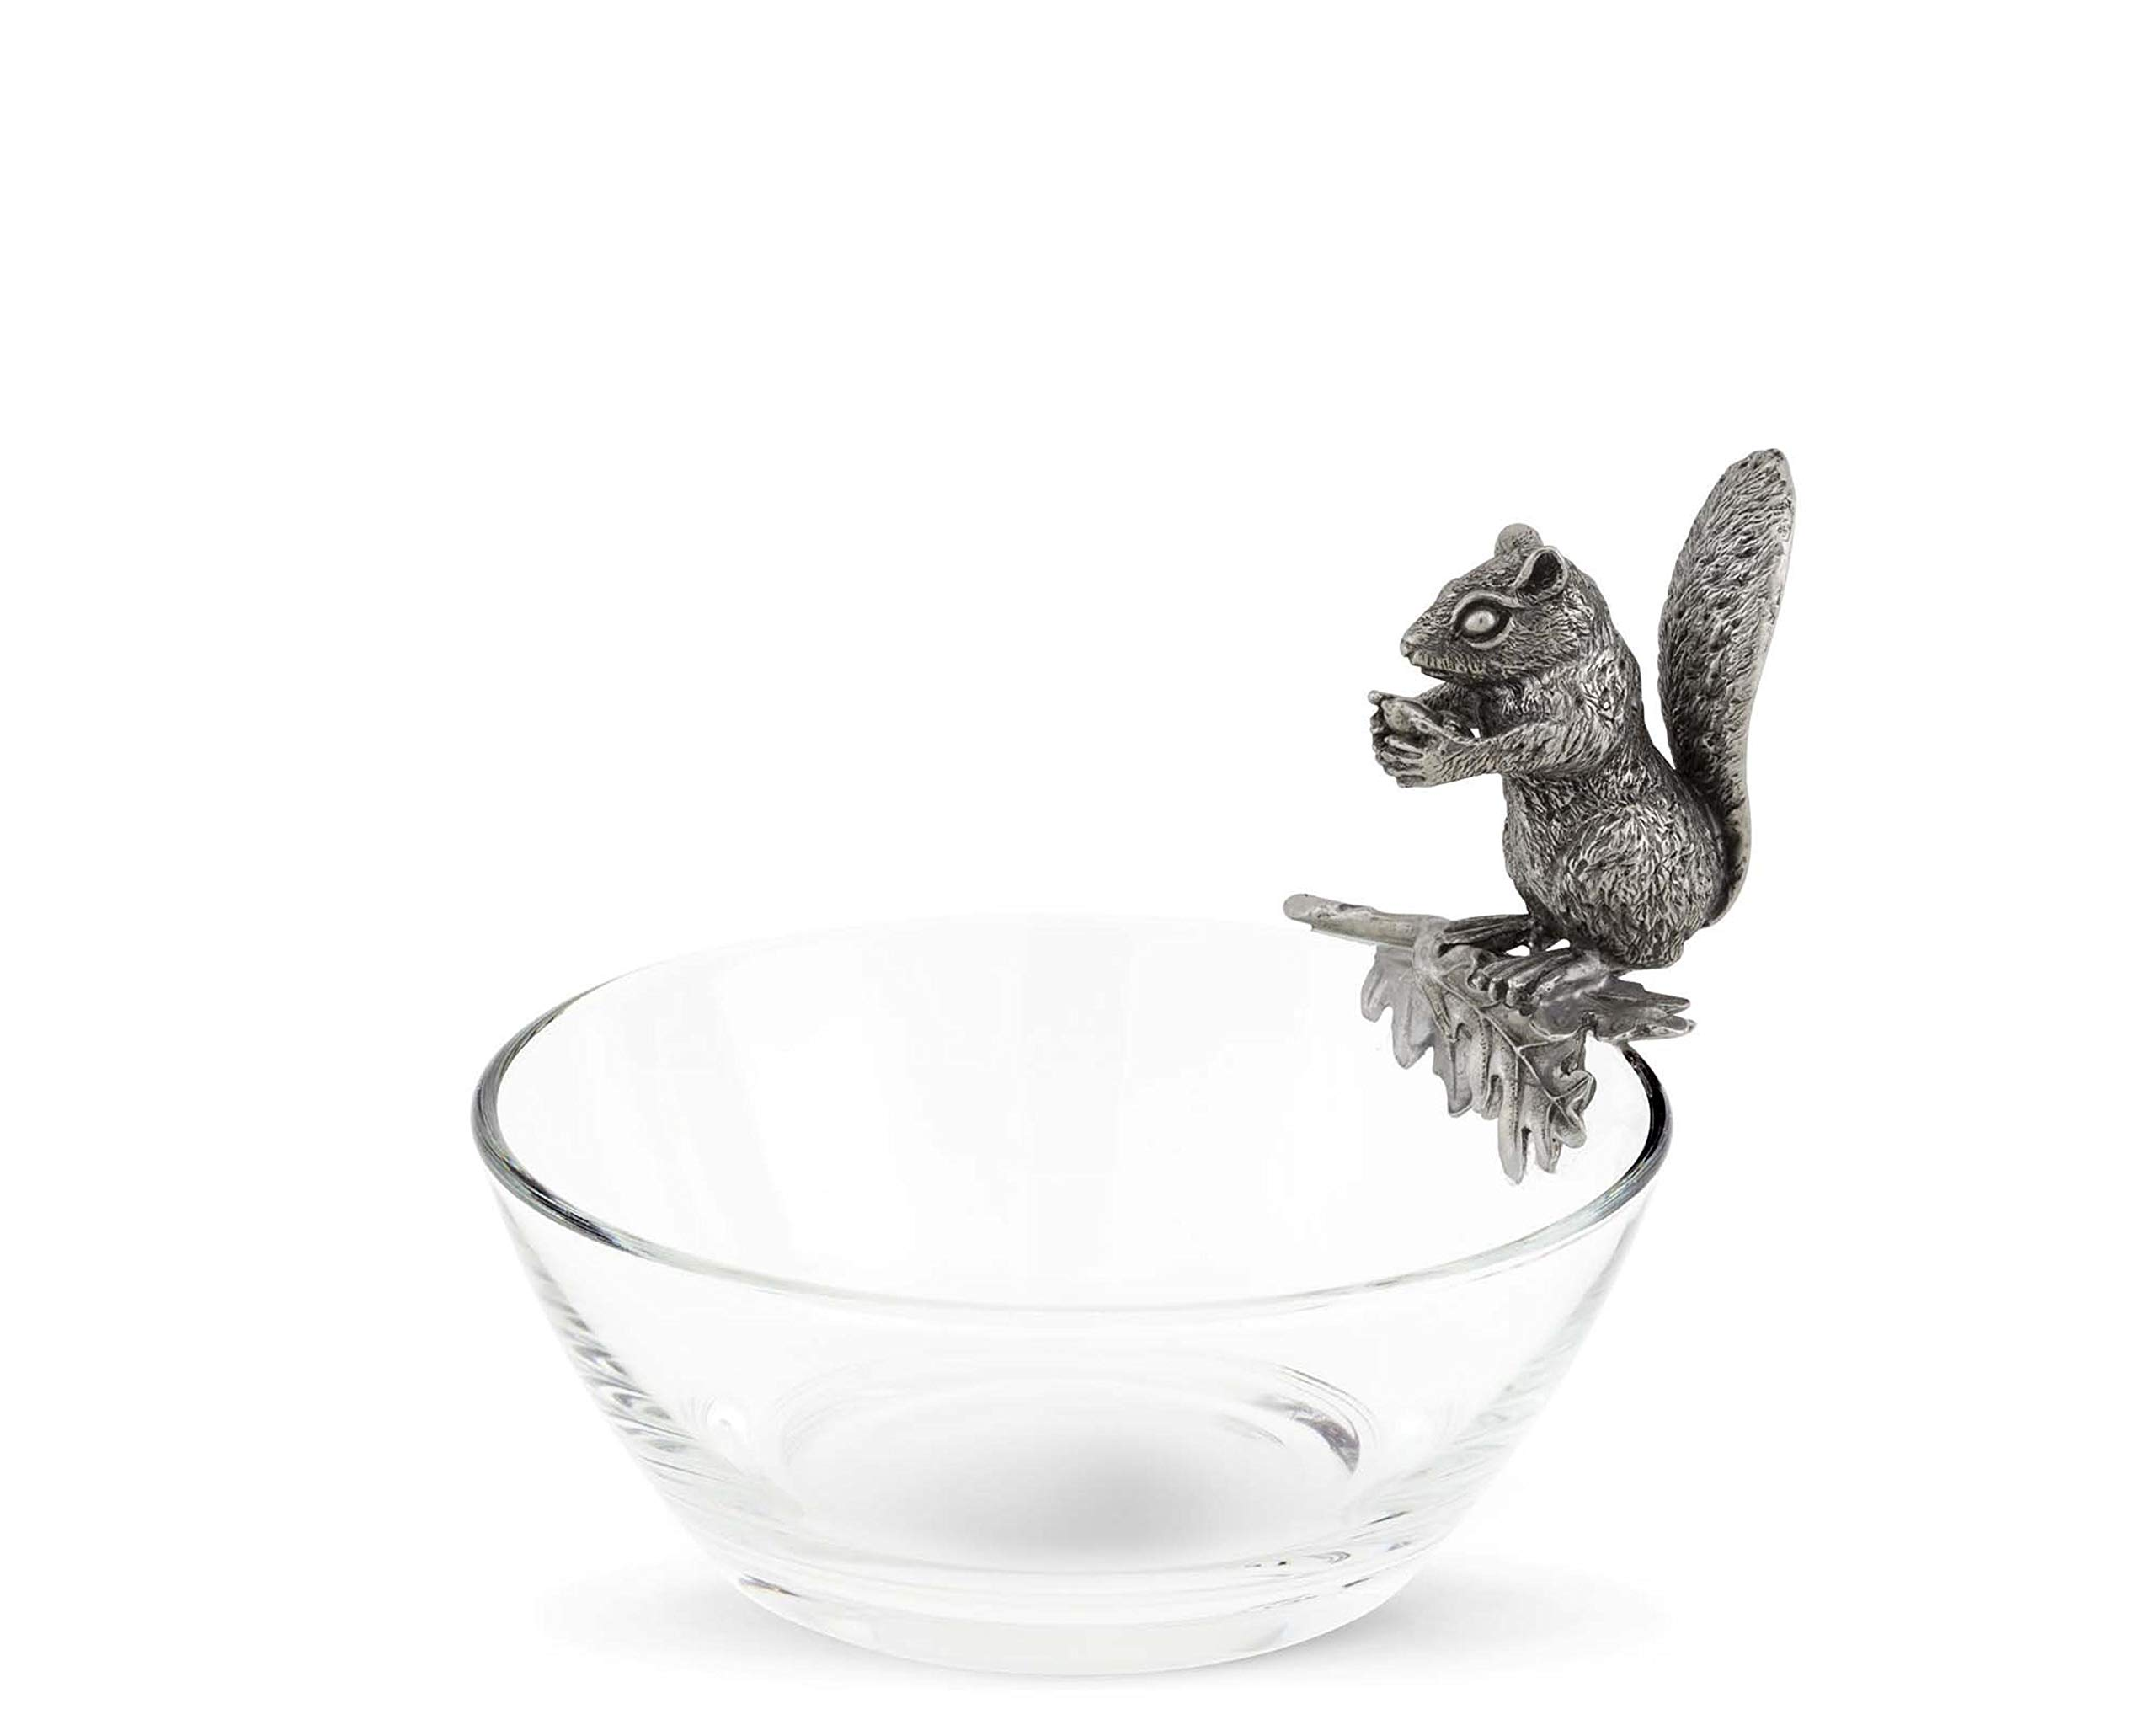 Vagabond House Glass Nut Bowl with Pewter Perched Squirrel 6'' Diameter x 5.5'' Tall